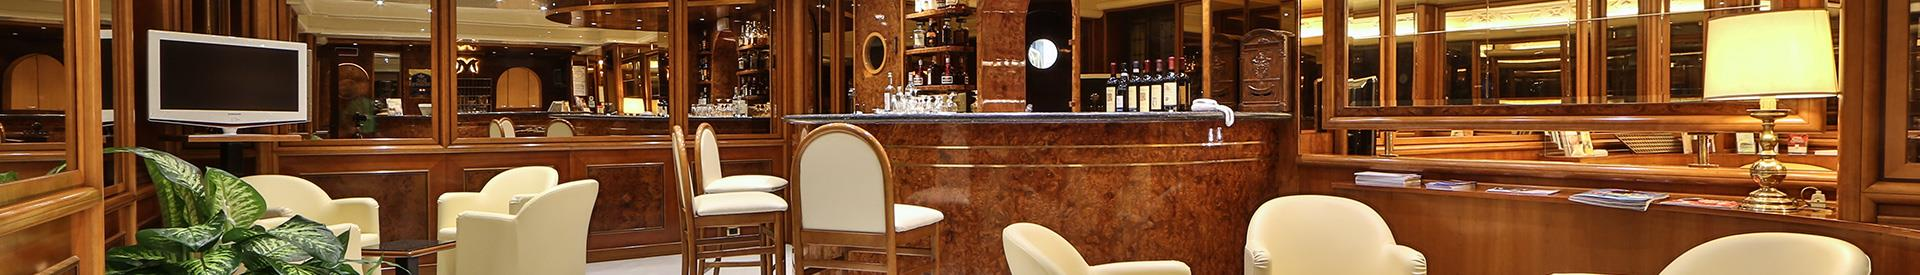 Looking for a hotel for your stay in Genova (GE)? Book/reserve at the Best Western Hotel Moderno Verdi